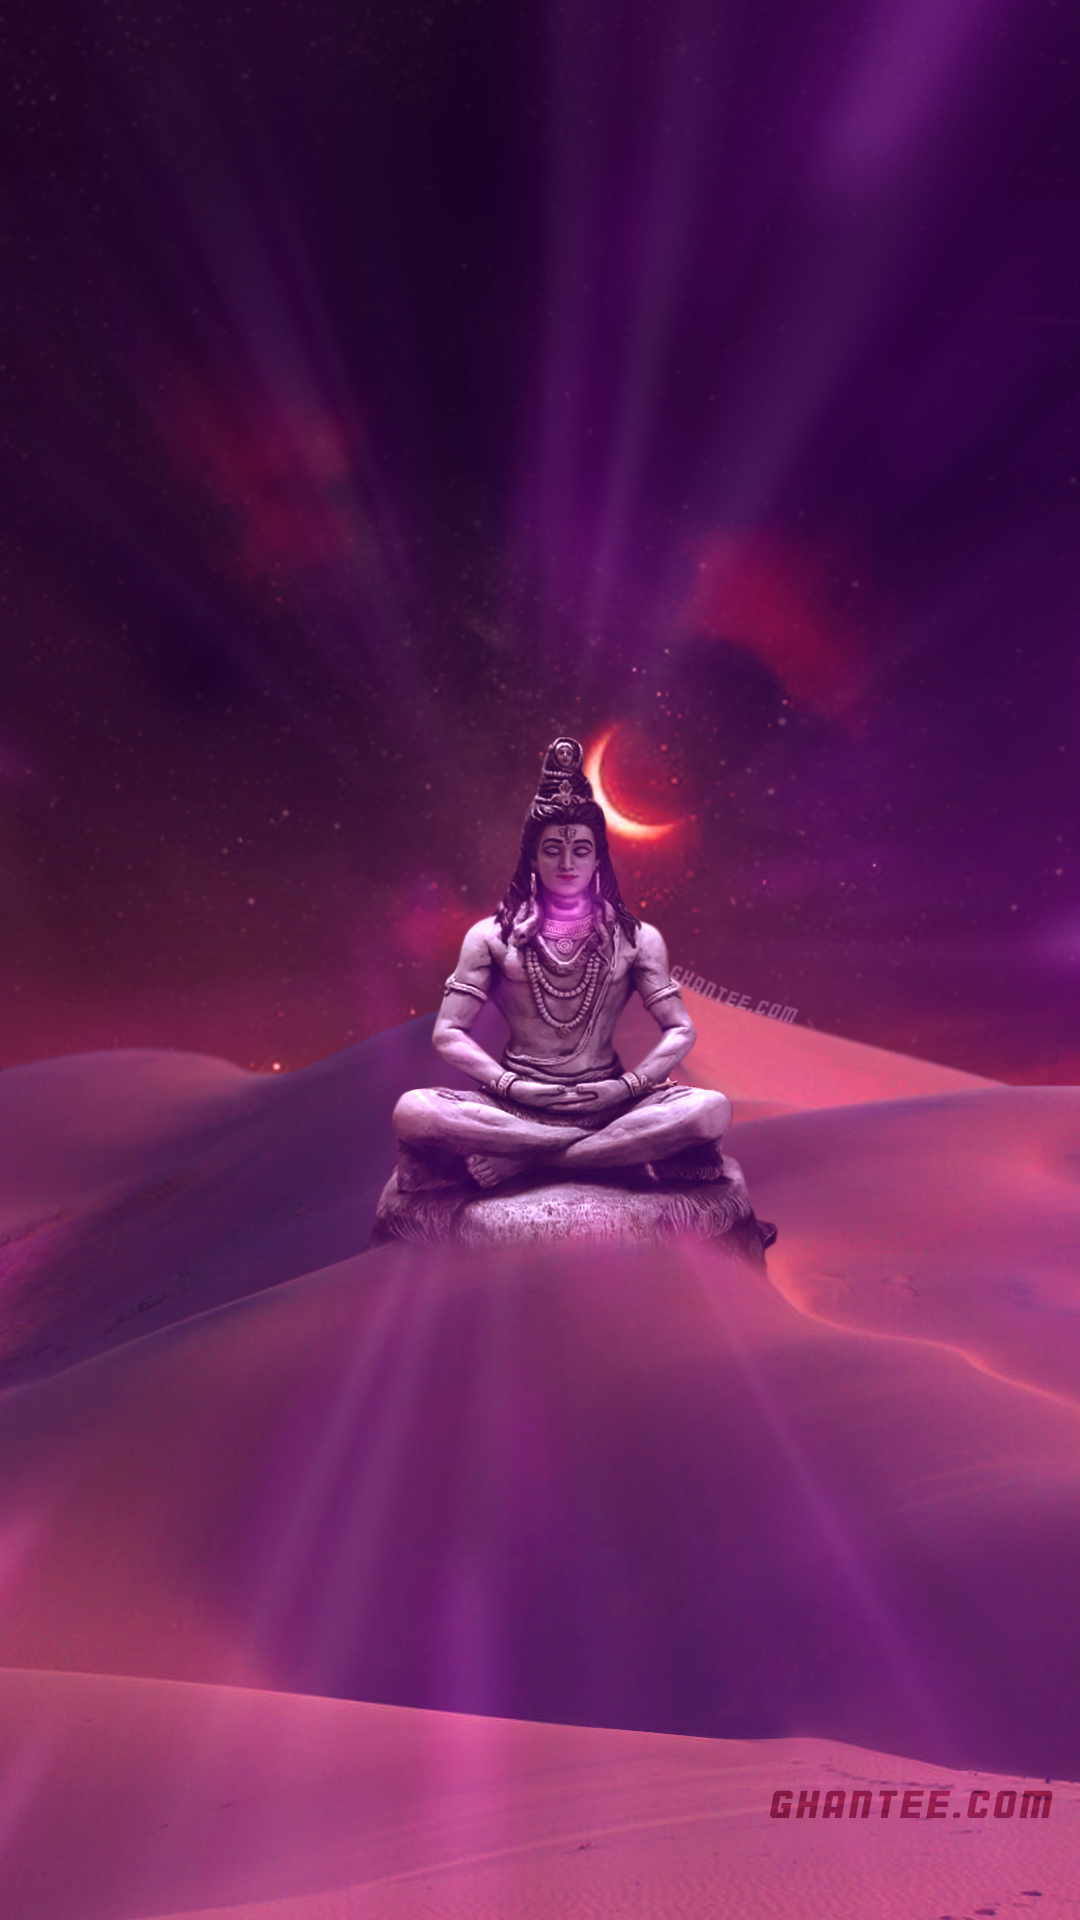 lord shiva meditating in desert glowing phone wallpaper | full HD